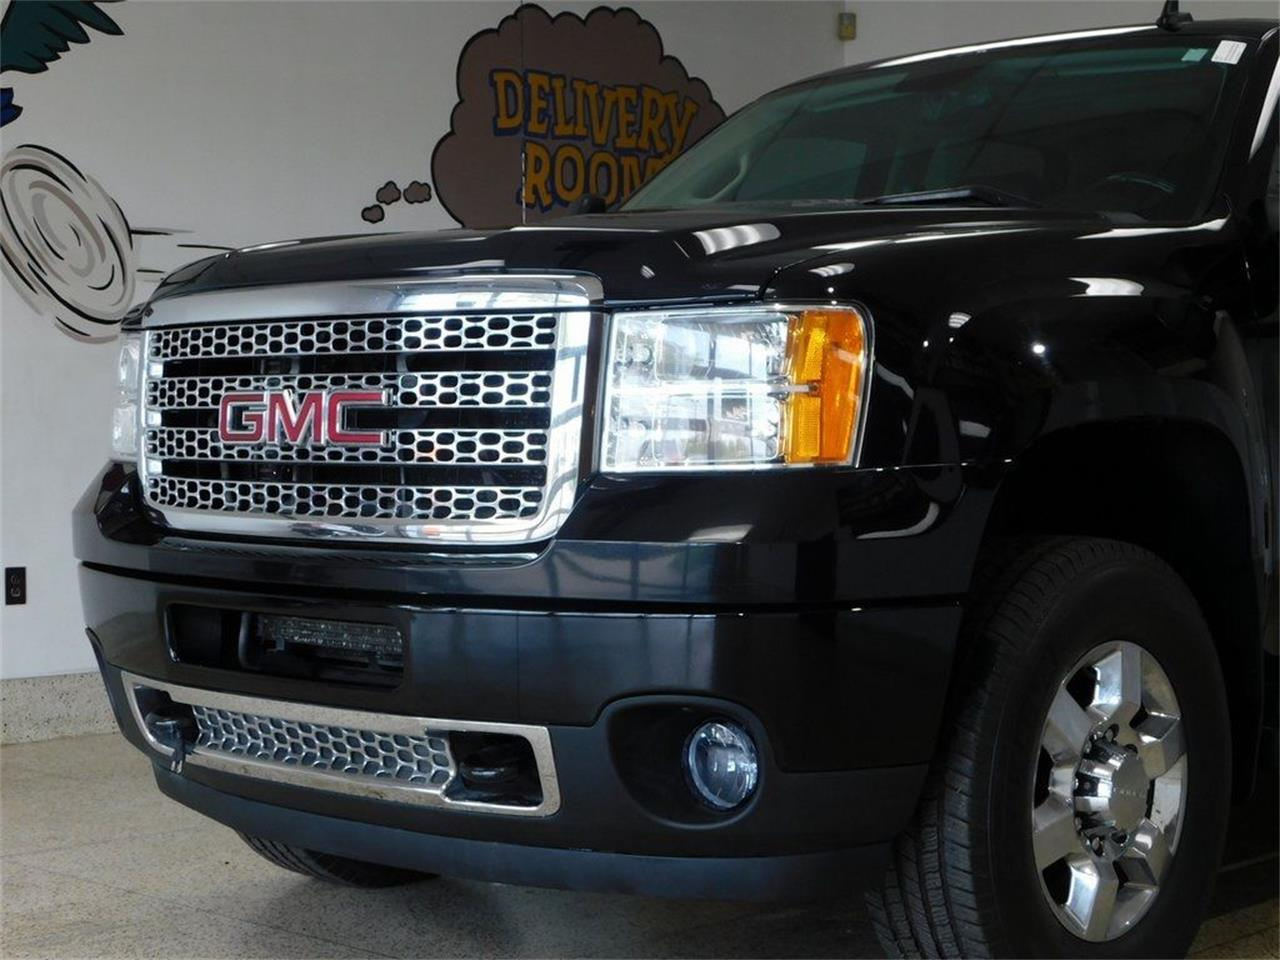 2013 GMC Sierra 2500 (CC-1390988) for sale in Hamburg, New York